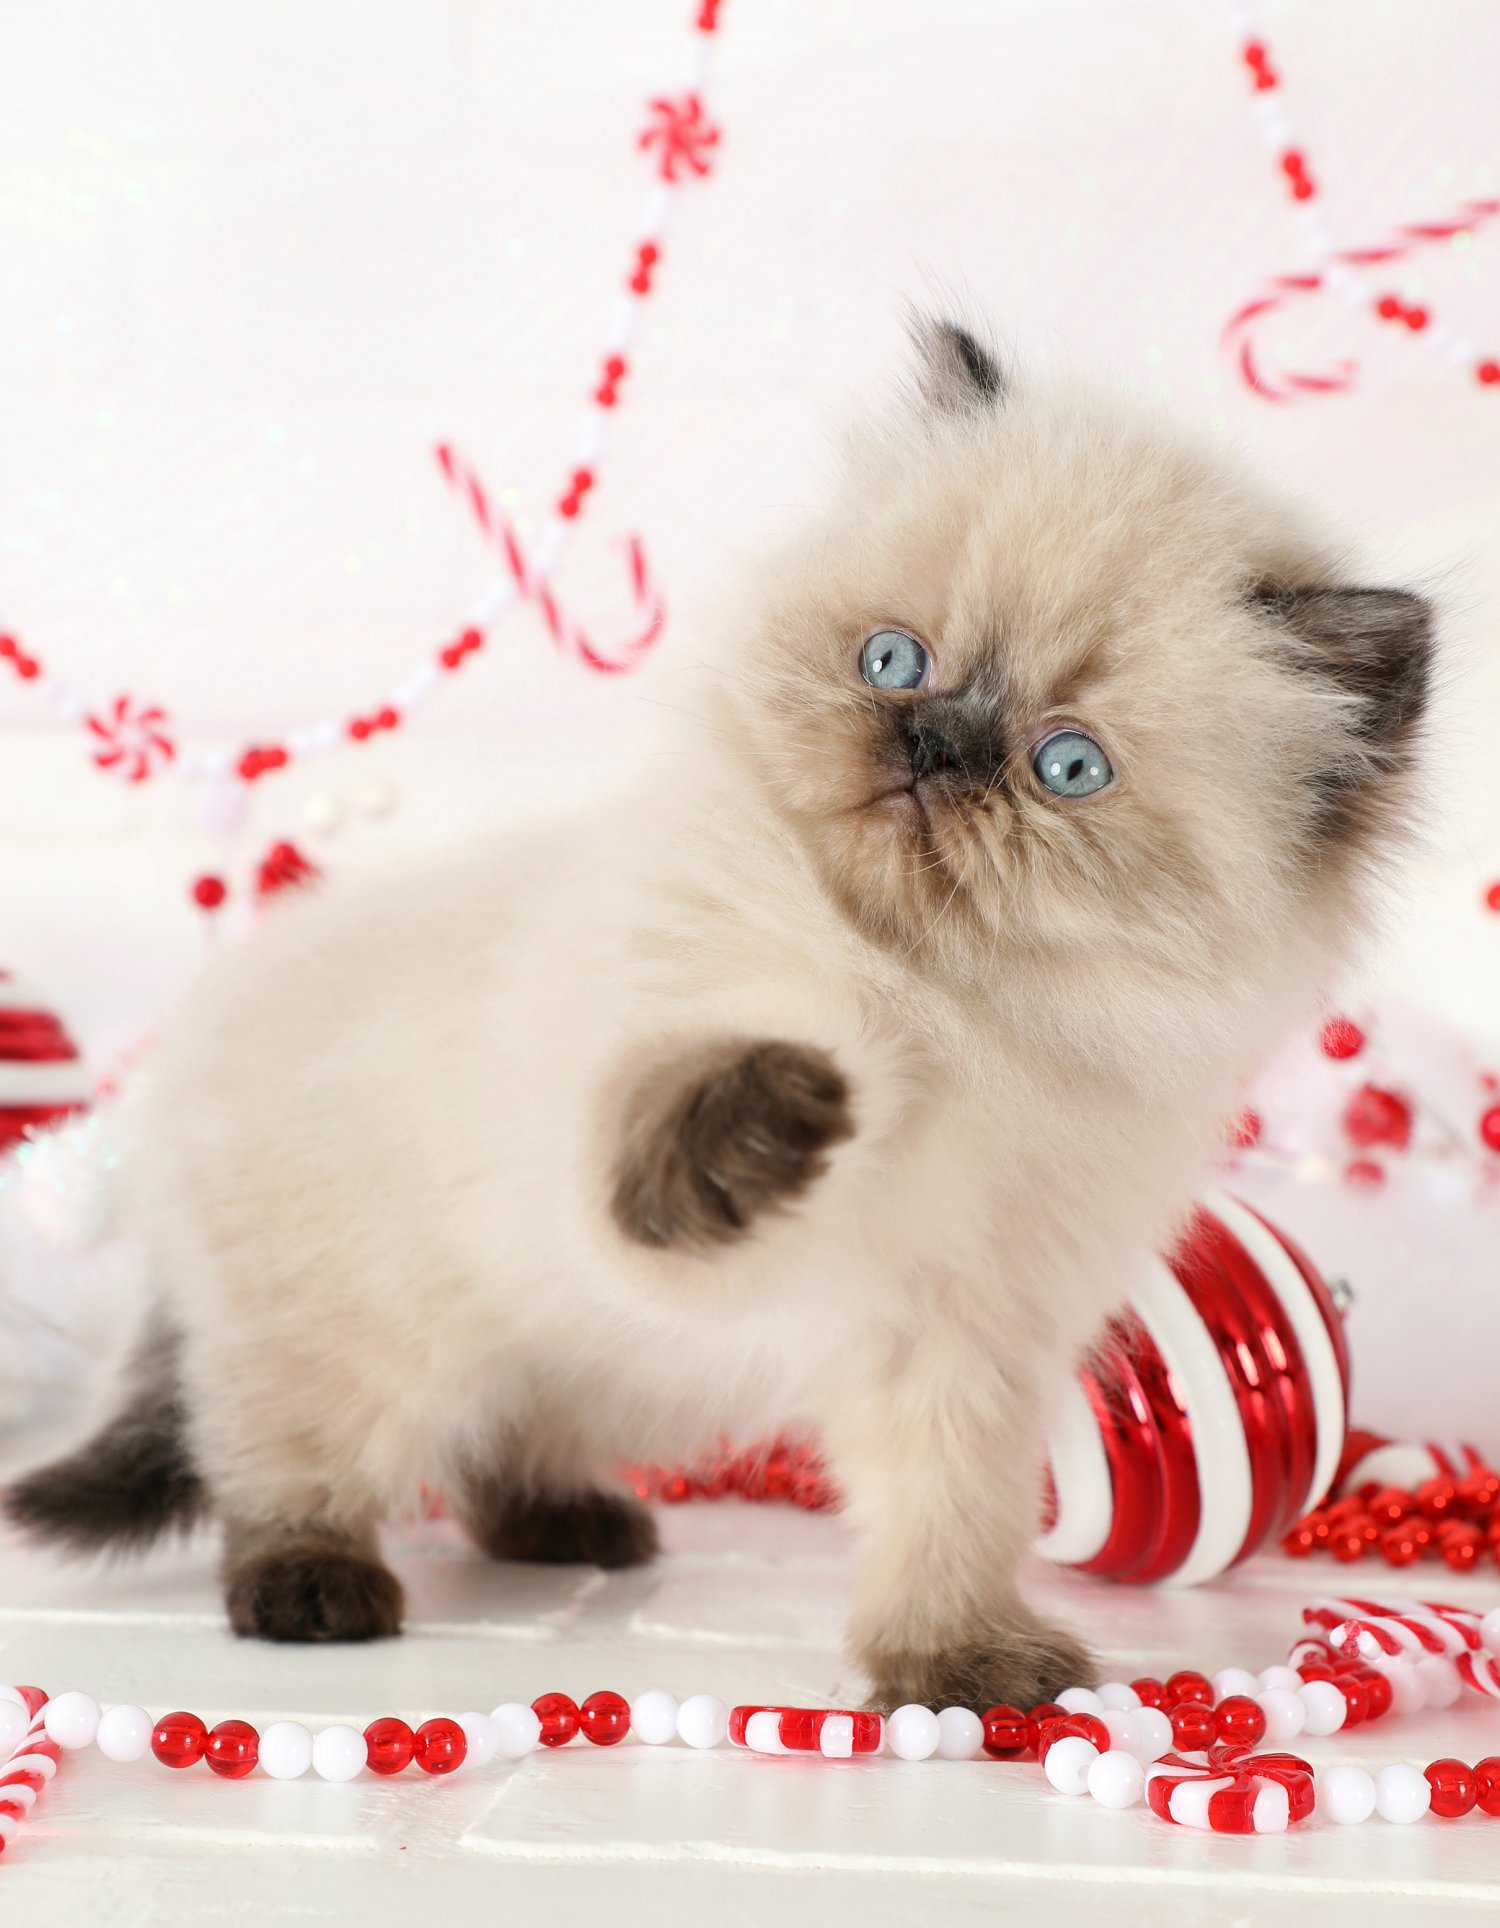 Seal Point Himalayan Kitten For SaleUltra Rare Persian Kittens For